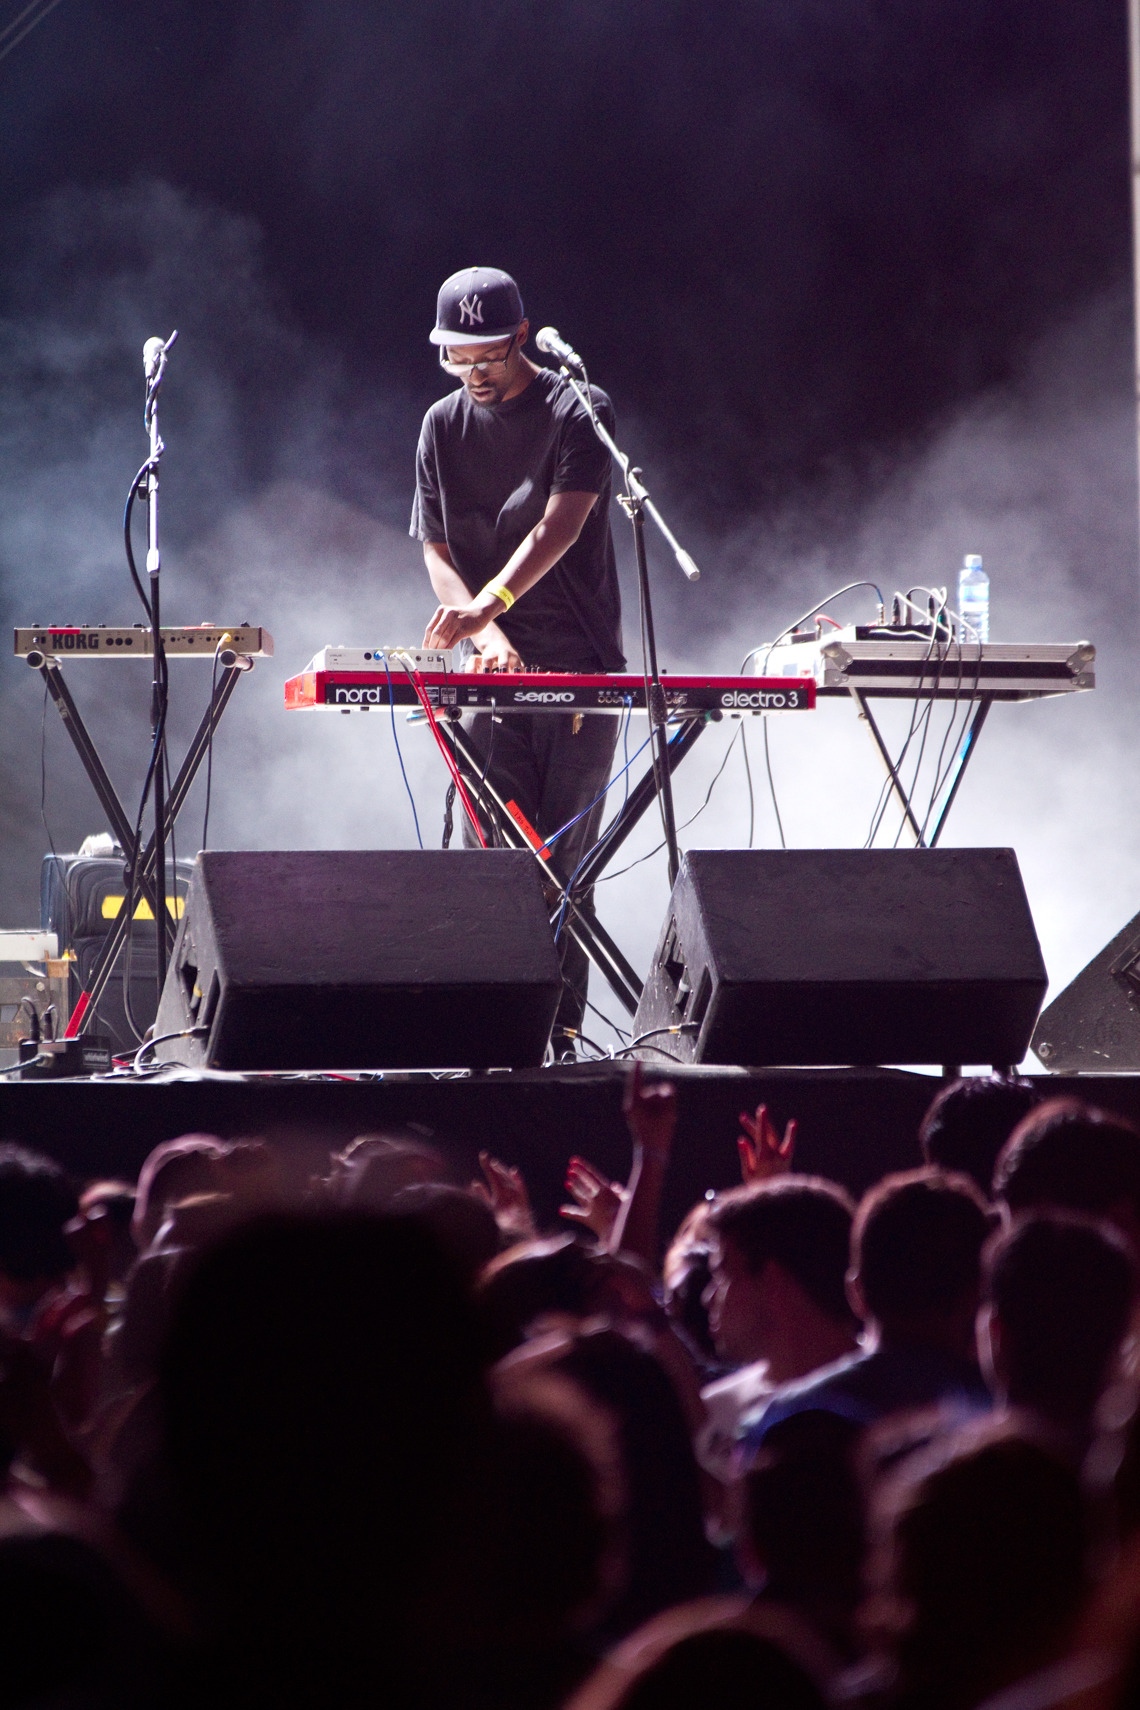 Noise 2012 The Knocks por Adrián Gutiérrez para Your Mother Should Know. http://noise-noise-noise.com/ ….. The Knocks by Adrián Gutiérrez for Your Mother Should Know. http://noise-noise-noise.com/